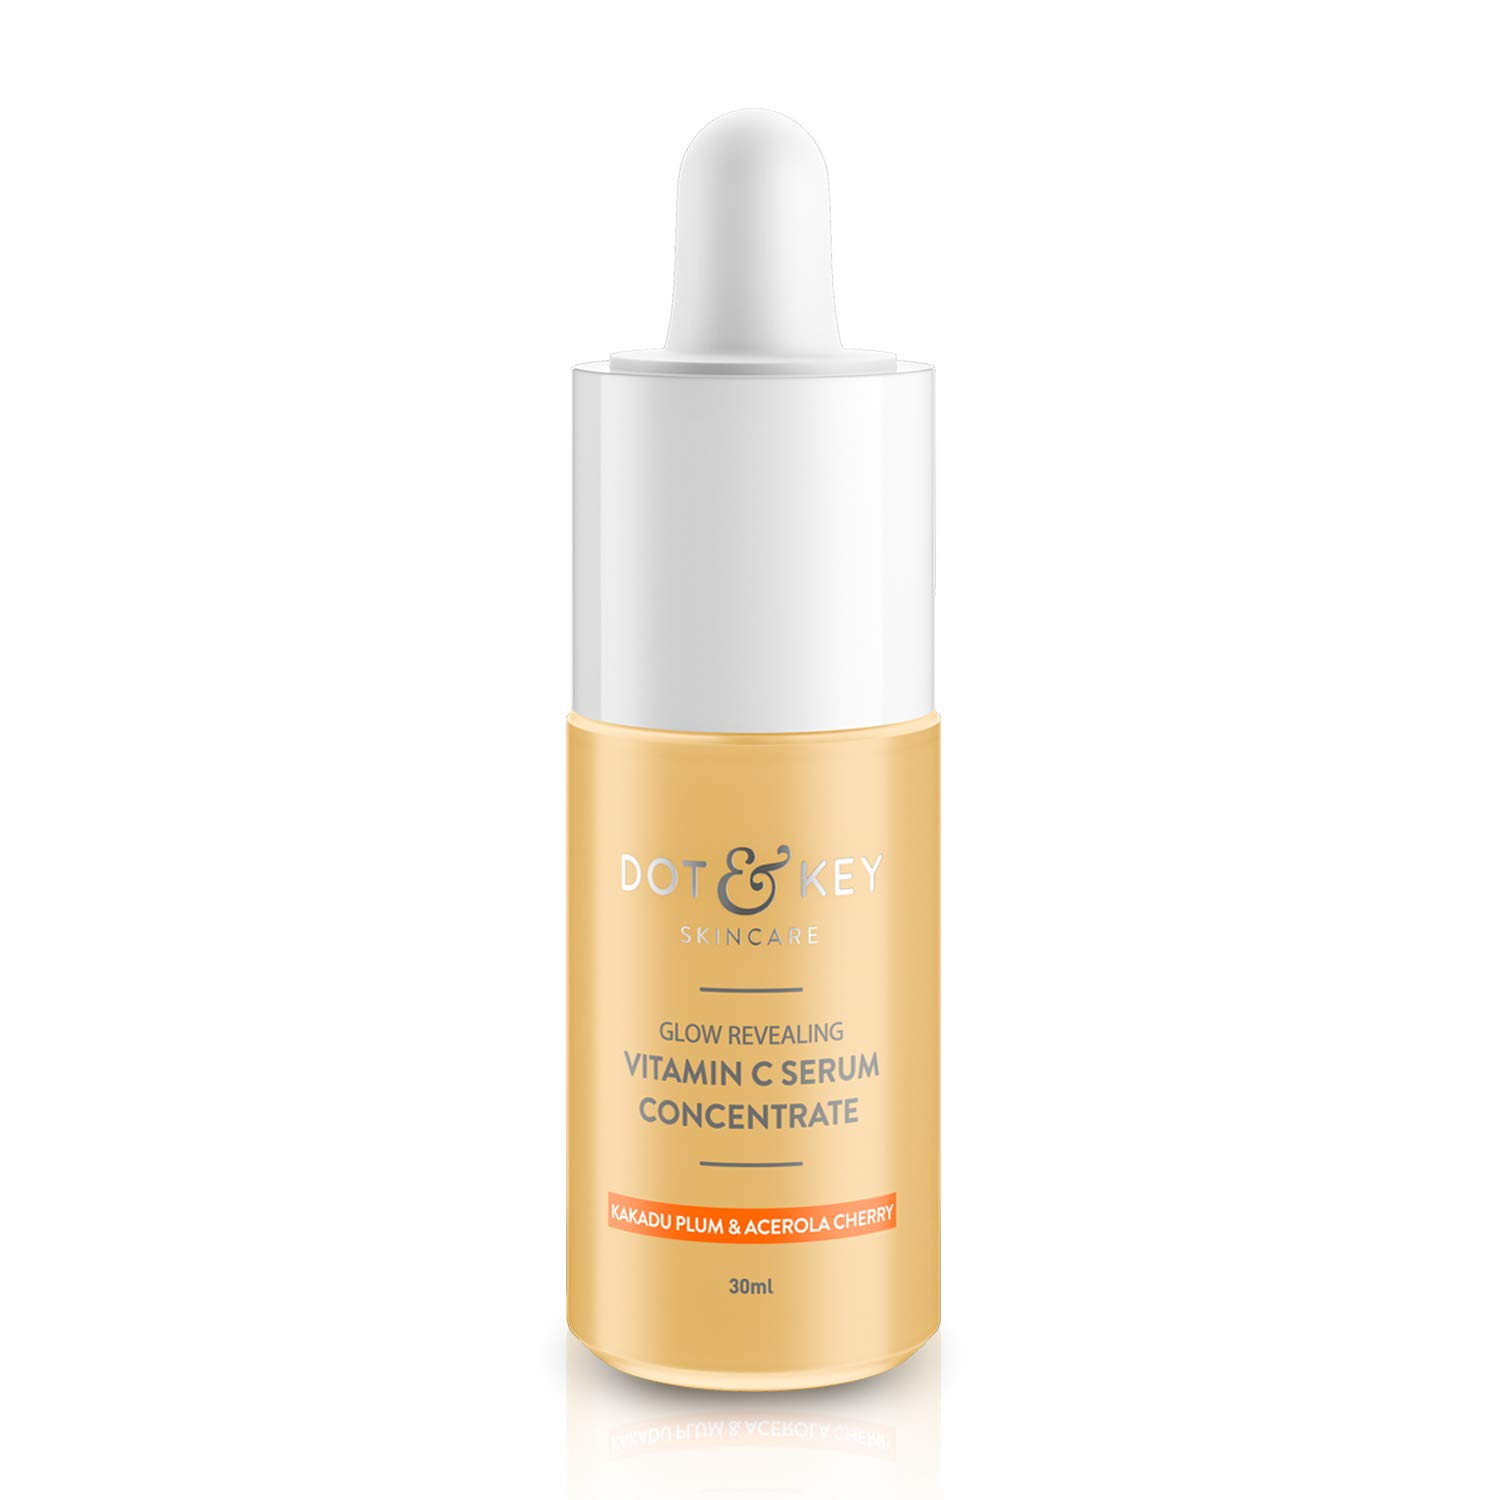 Dot & Key Glow Revealing Vitamin C Serum Concentrate